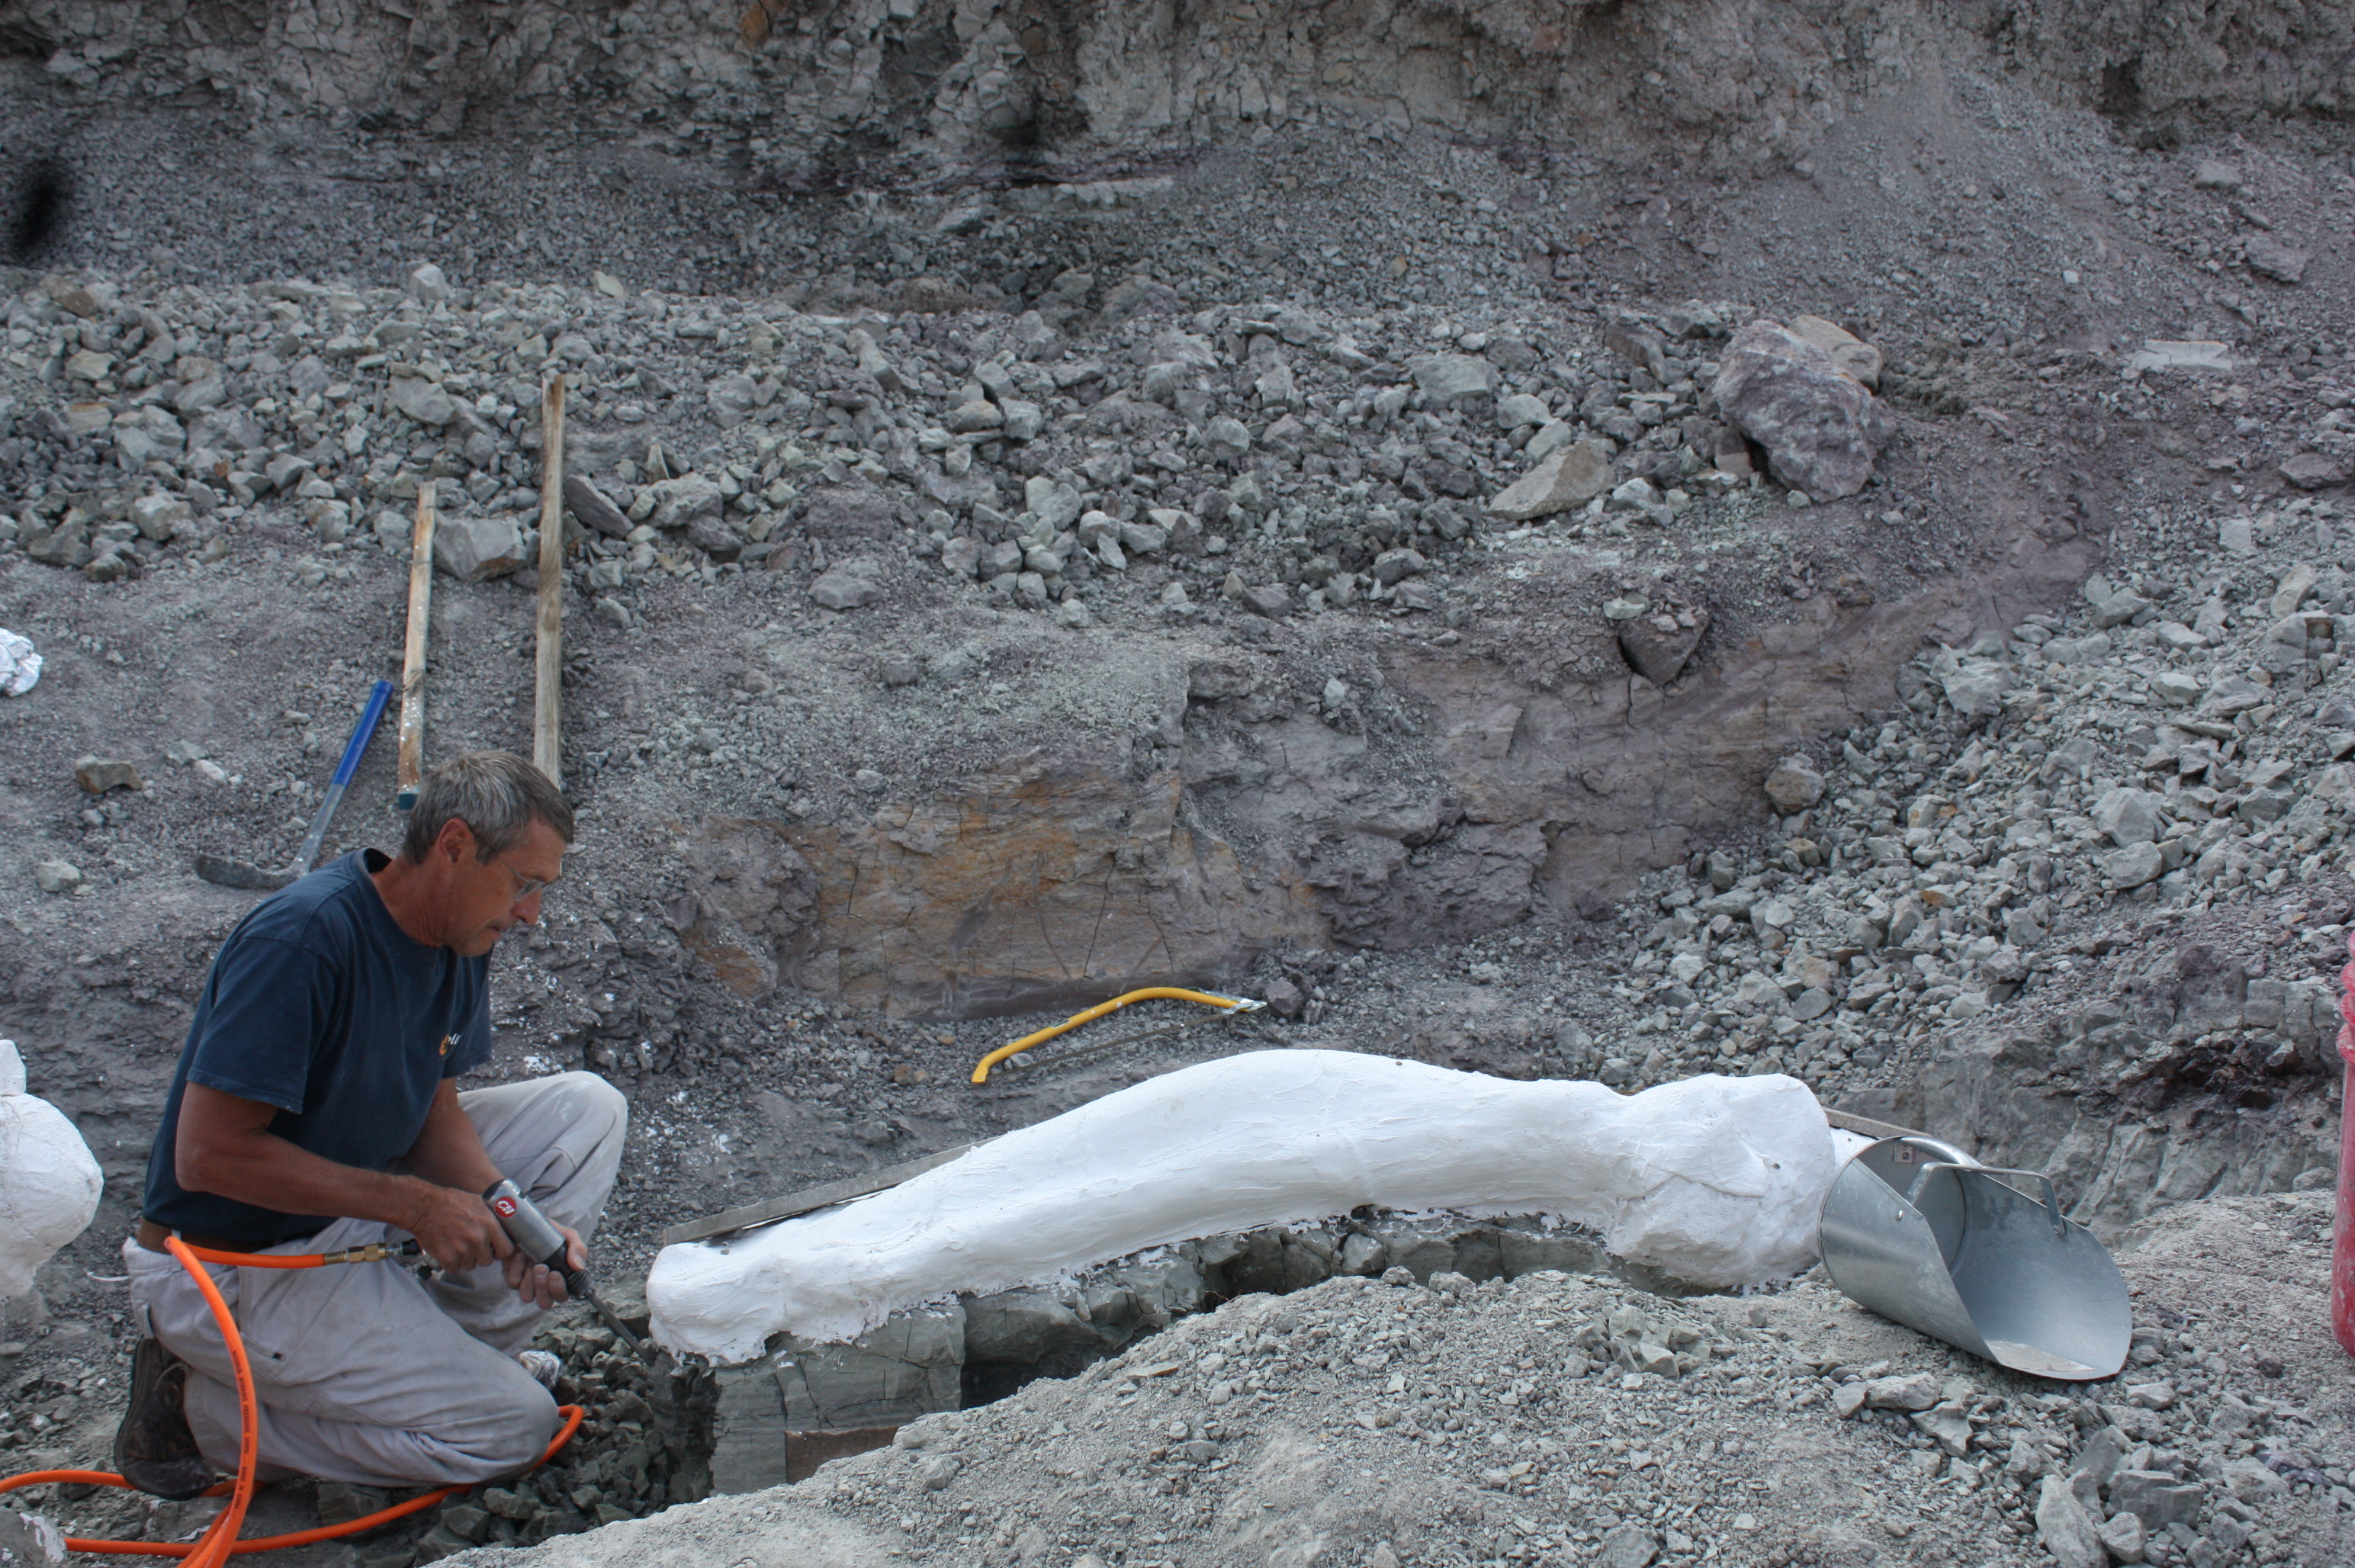 At work in our Jurassic dinosaur quarry